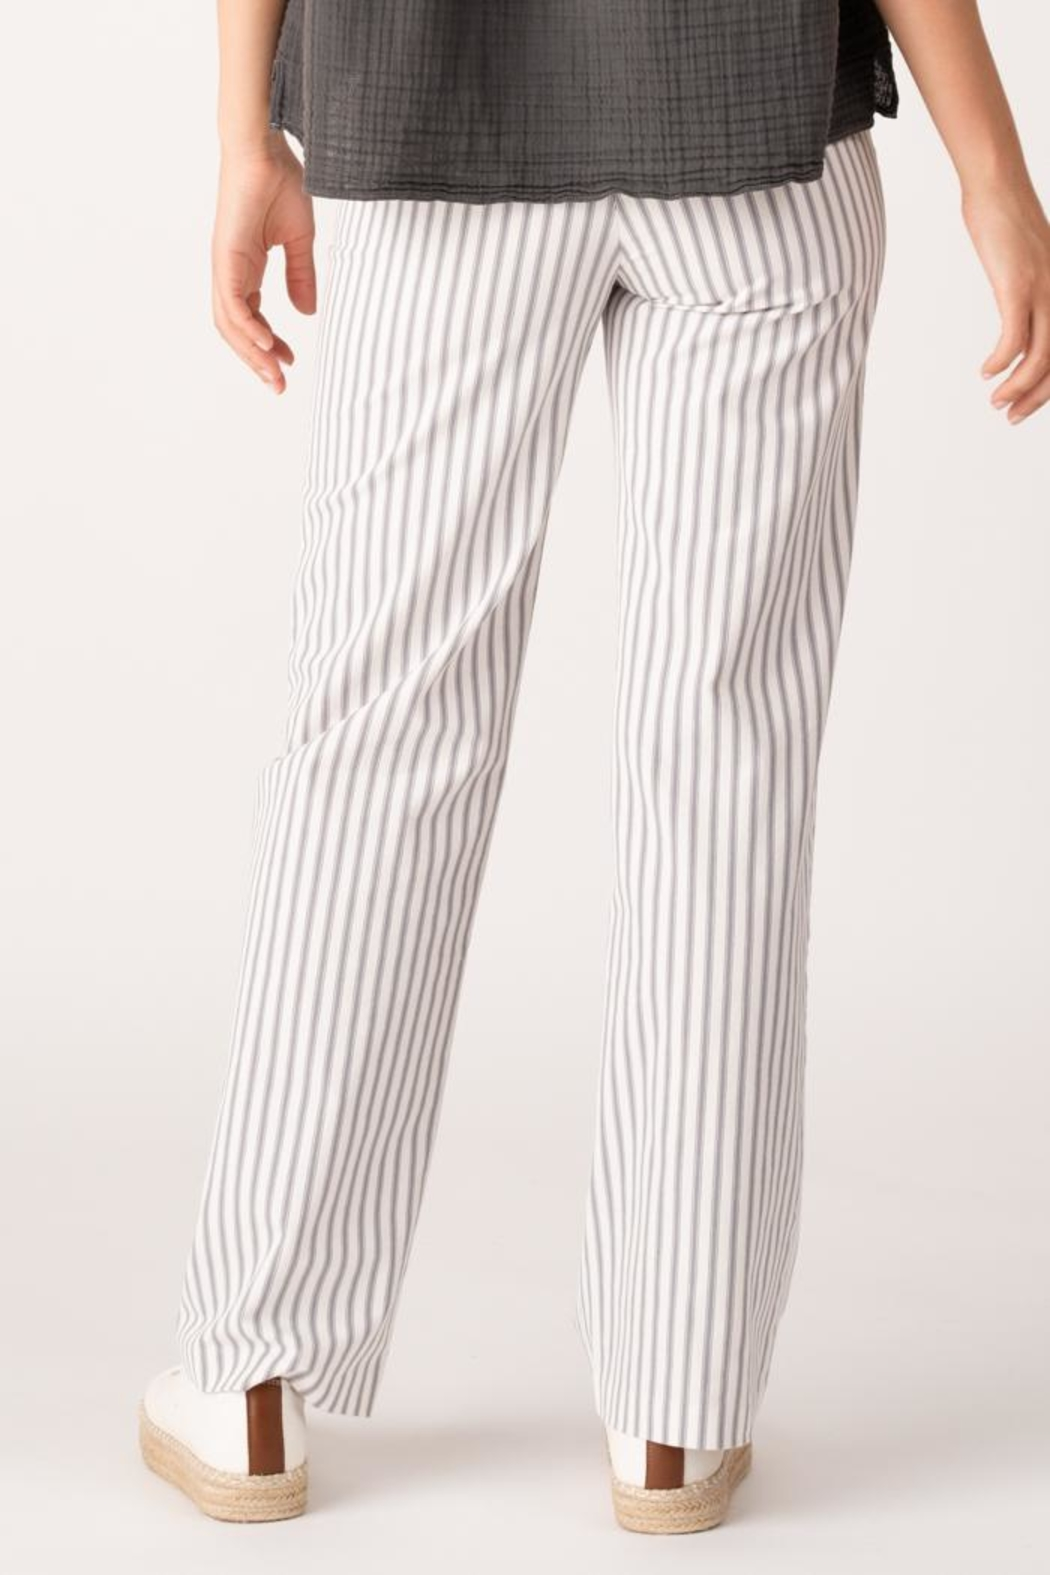 Margaret O'Leary Lace Up Pant - Front Full Image